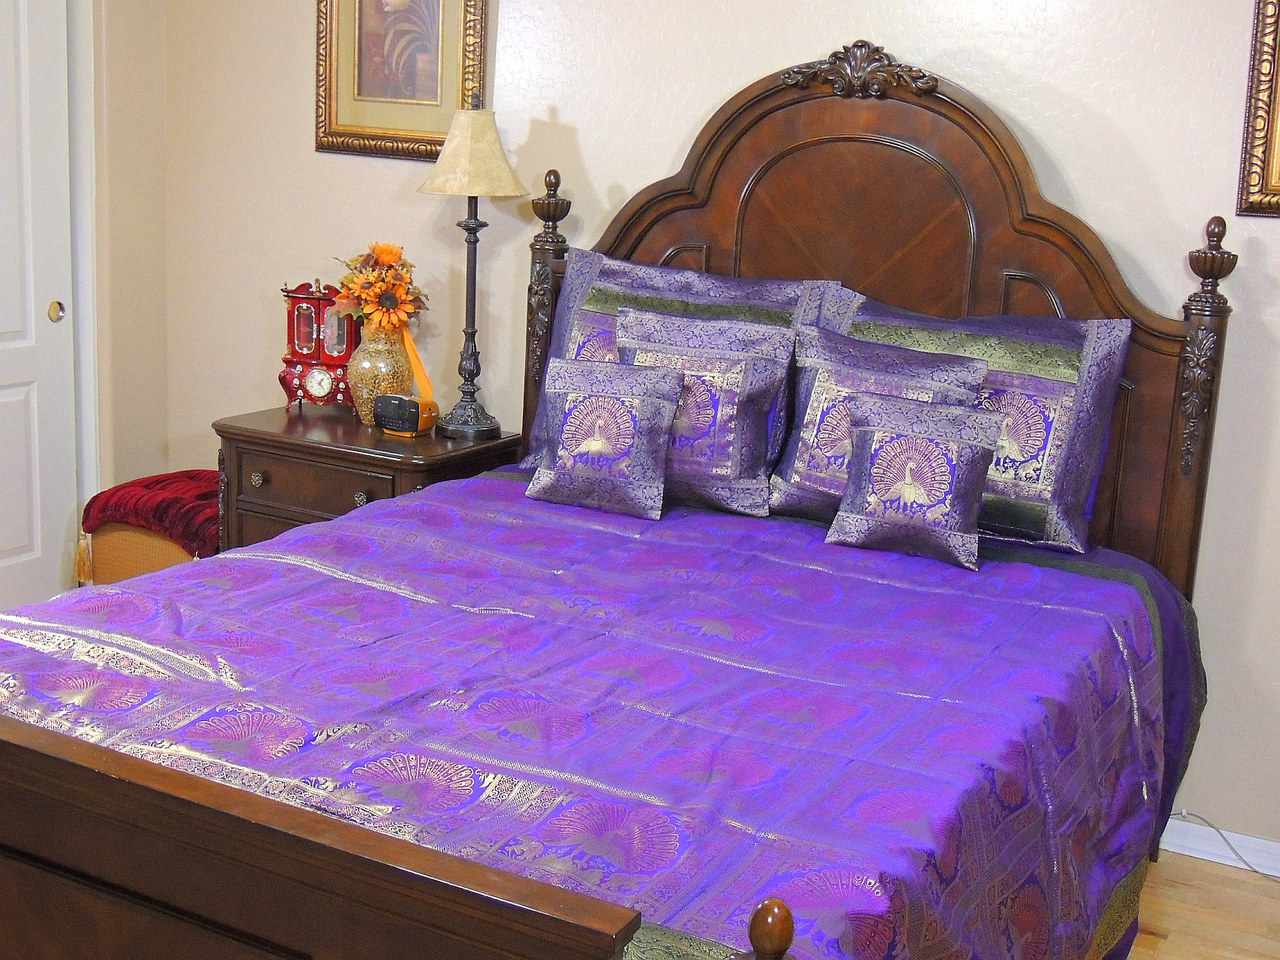 Bedspread or Comforter | Peacock Pillow Case | Peacock Bedding